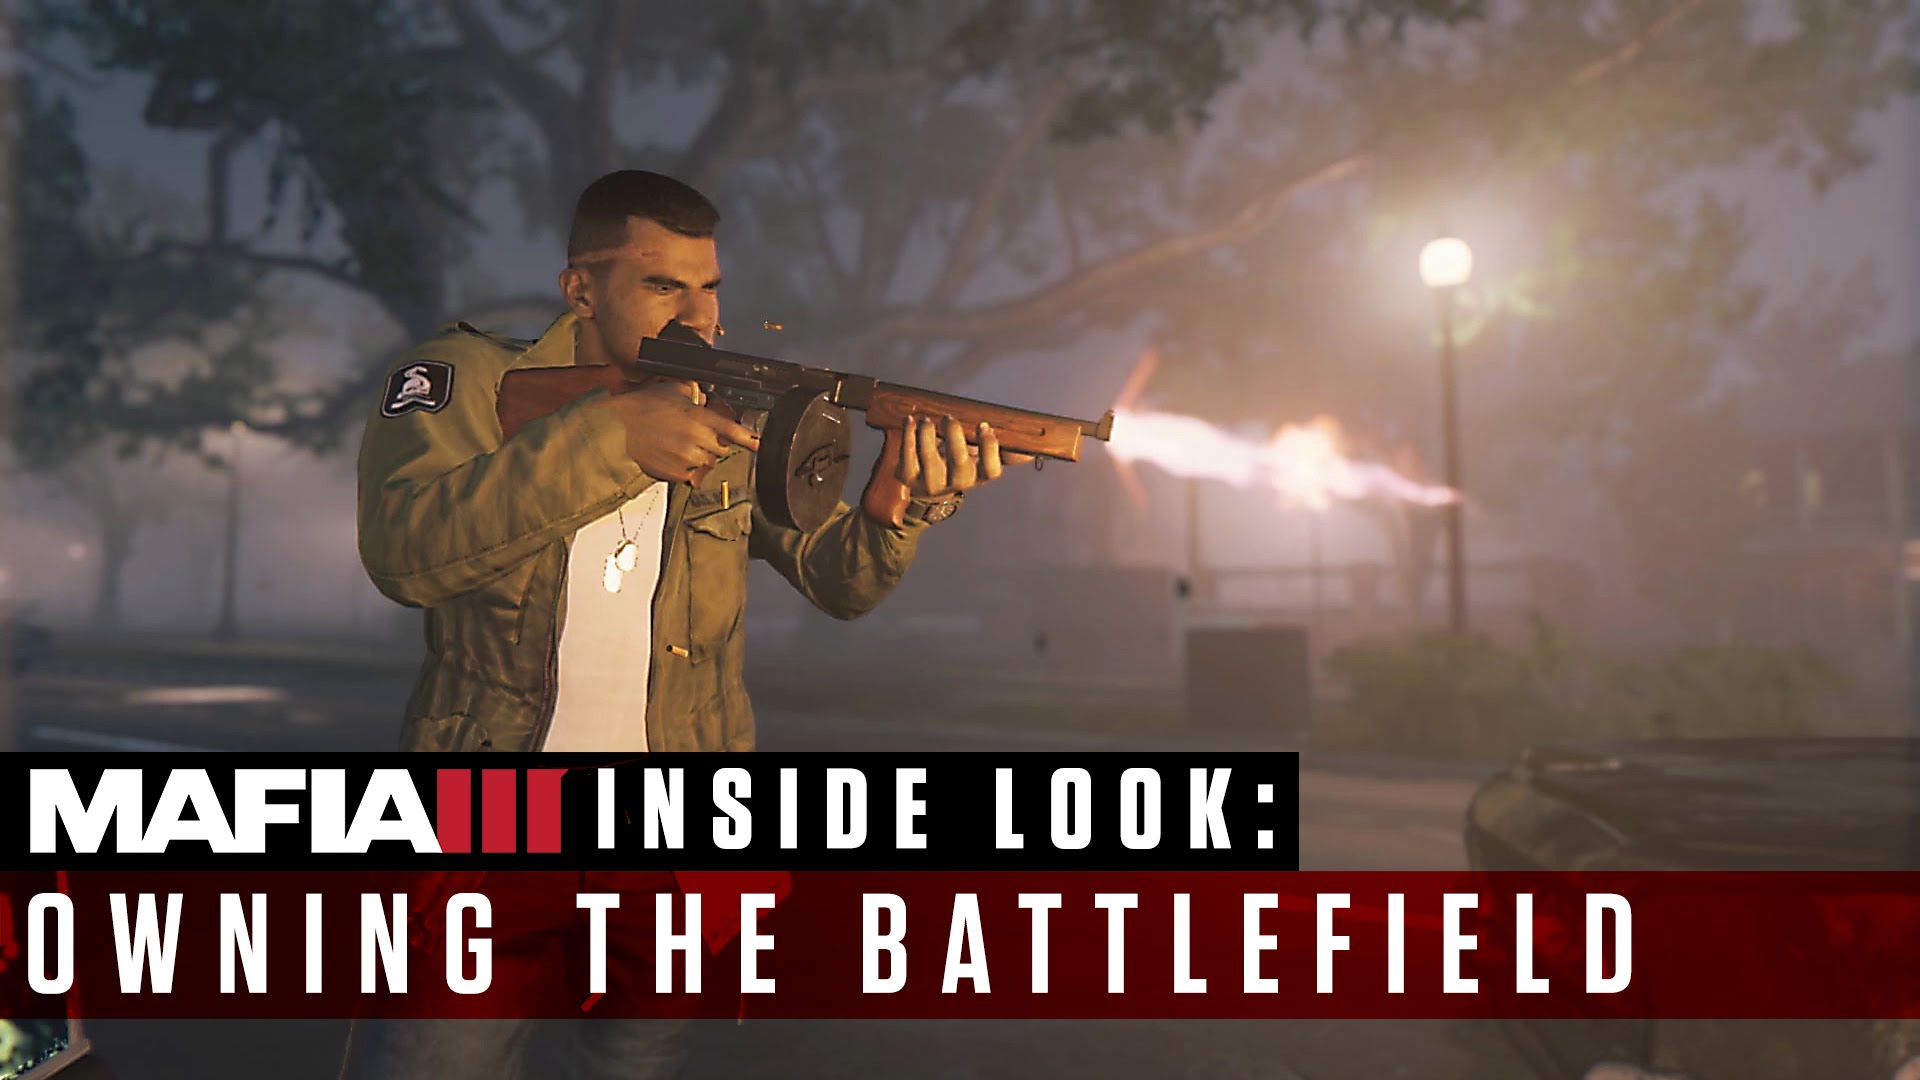 Mafia III - Inside Look - Owning the Battlefield